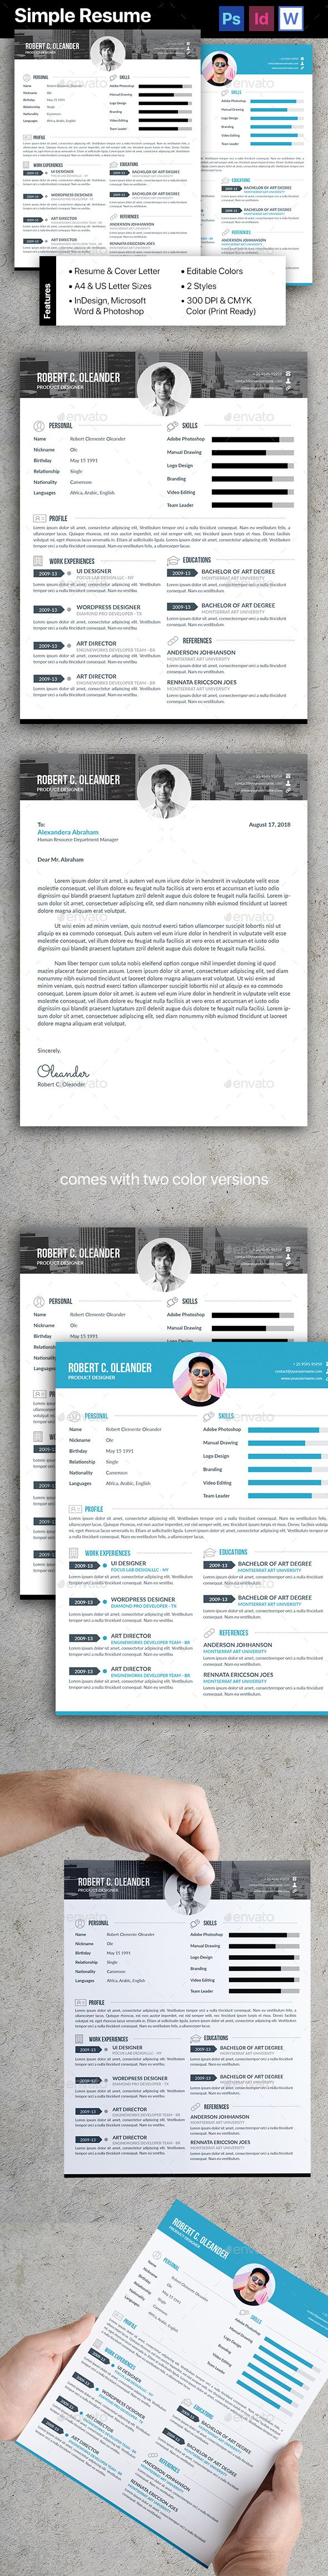 Resume/CV by atsar Features:Resume & Cover Letter InDesign INDD (For CS6 and later) Adobe Photoshop (For CS6 and later) Microsoft Word DOCX Comes in